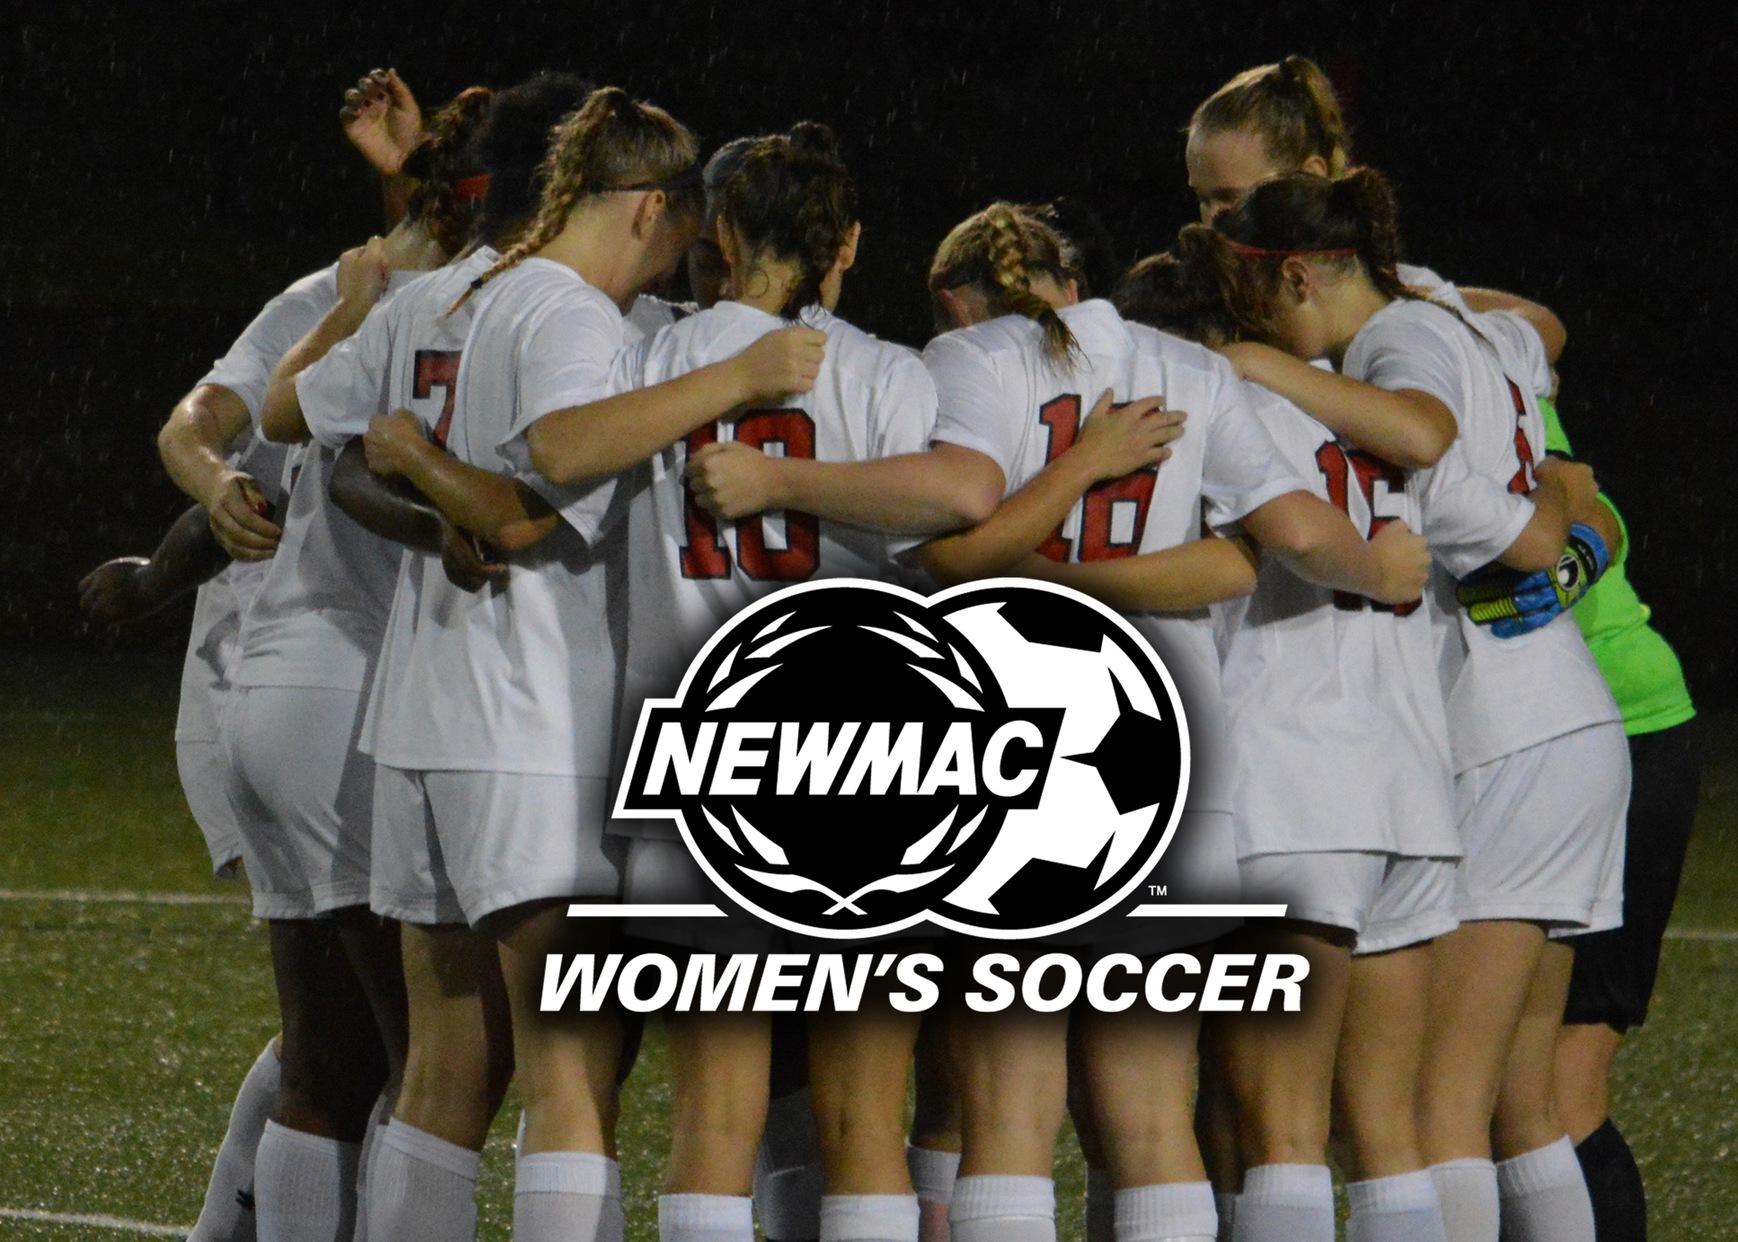 NEWMAC Quarterfinal Preview: No. 6 Clark at No. 3 Babson